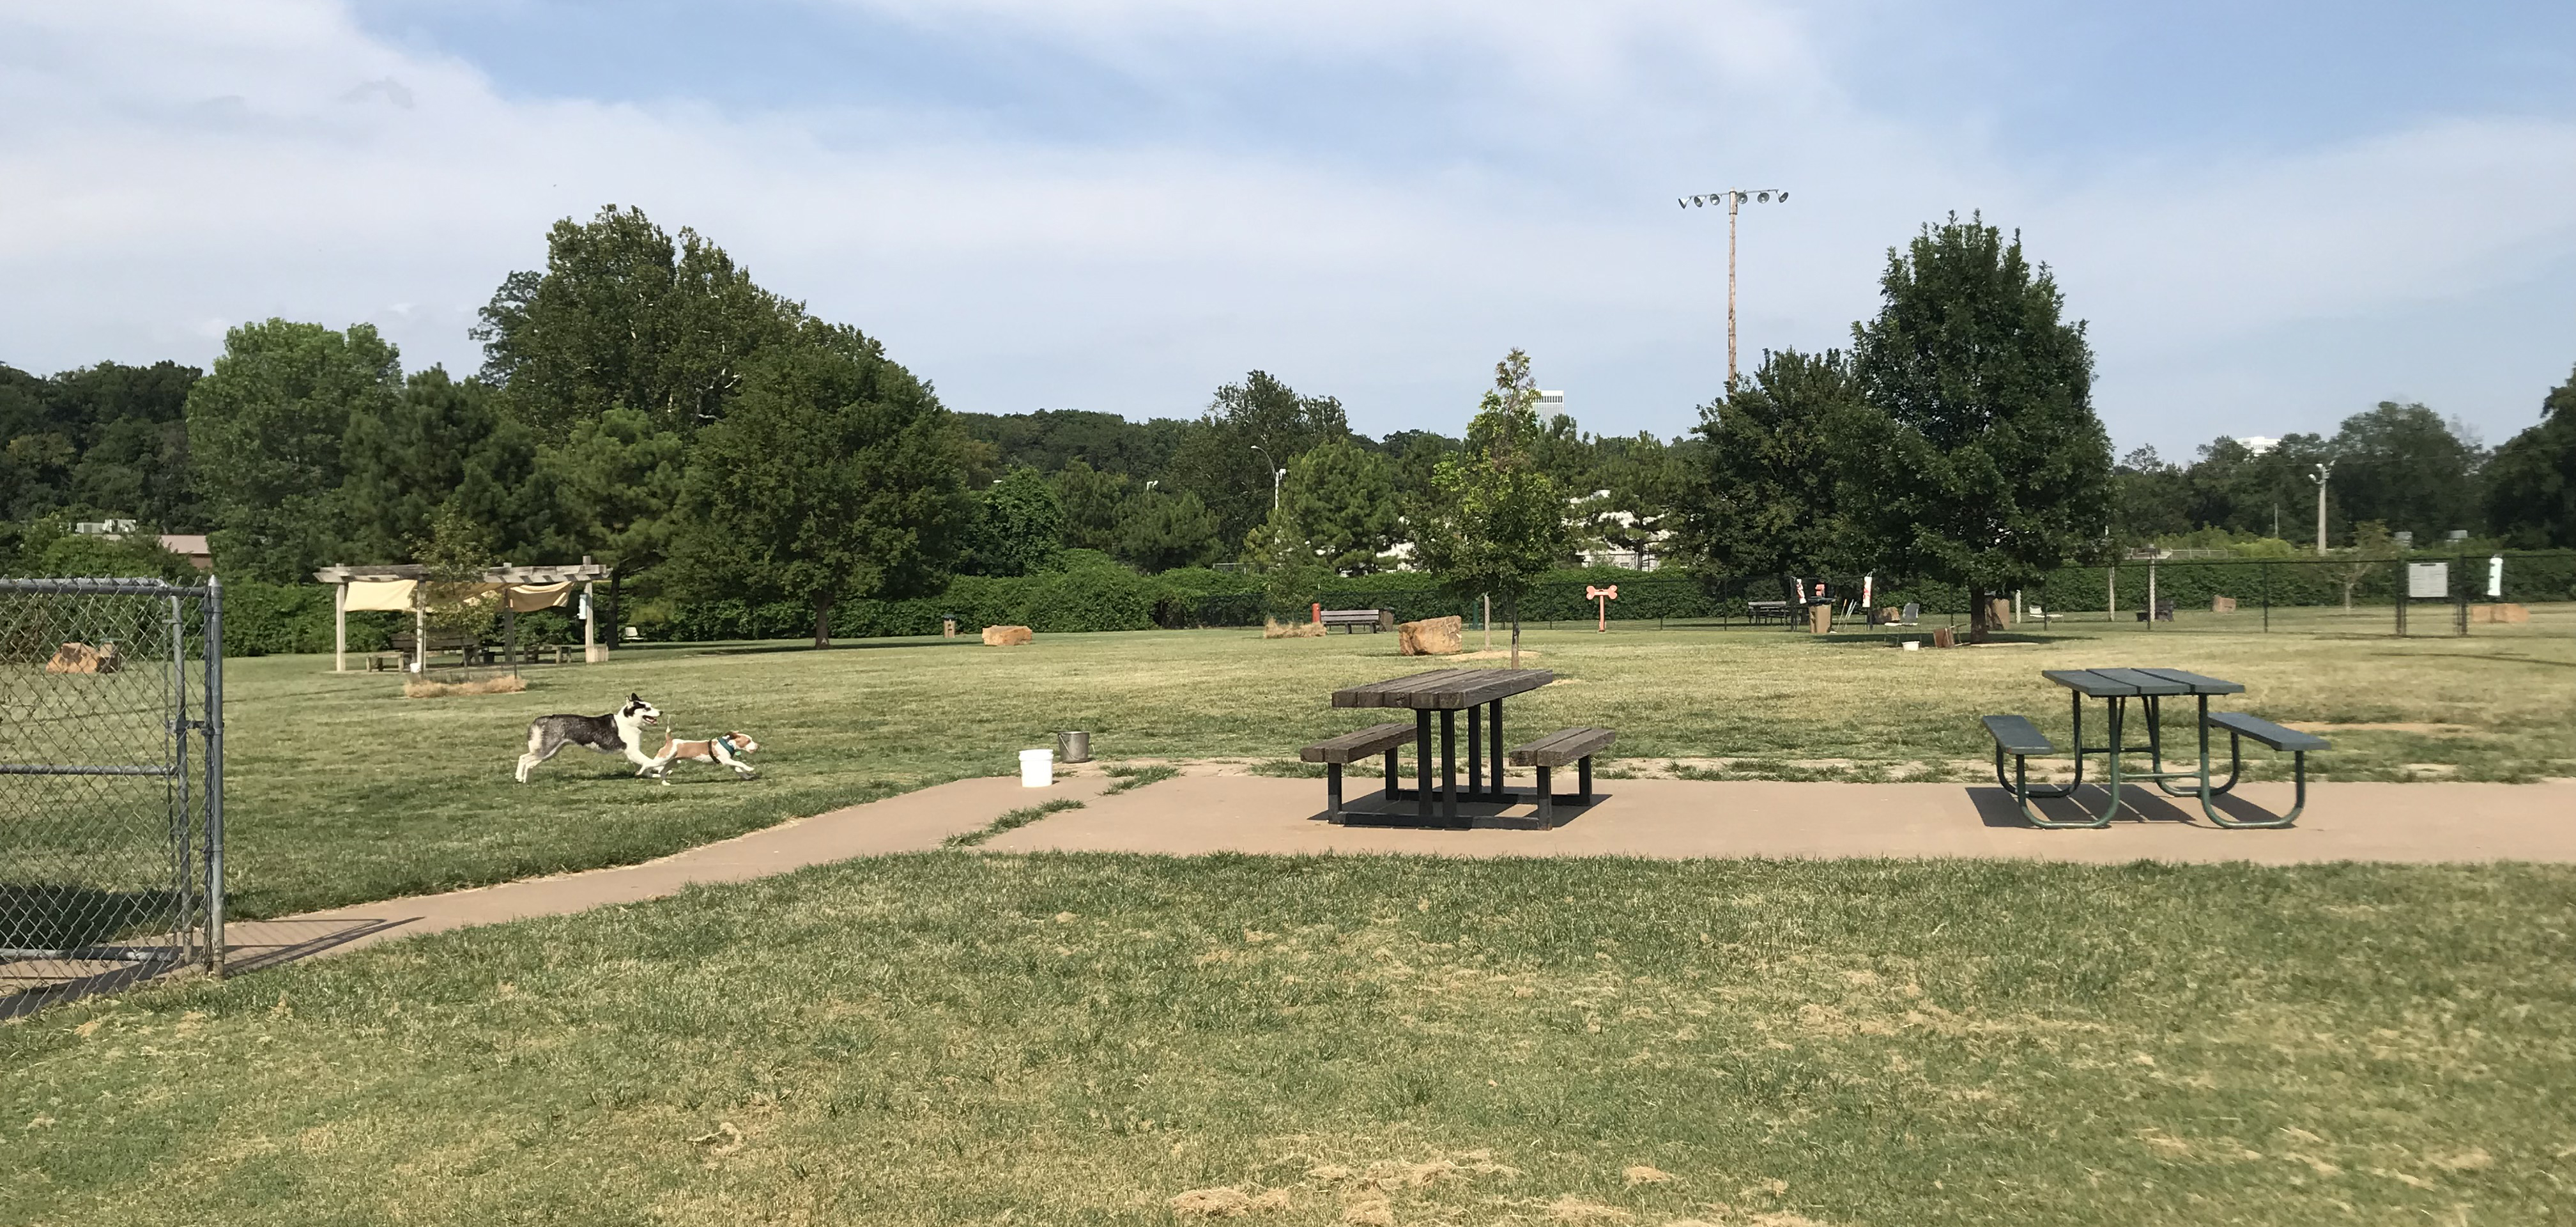 Dogs play on the large expanse of Joe Station Dog Park in Tulsa, Oklahoma.